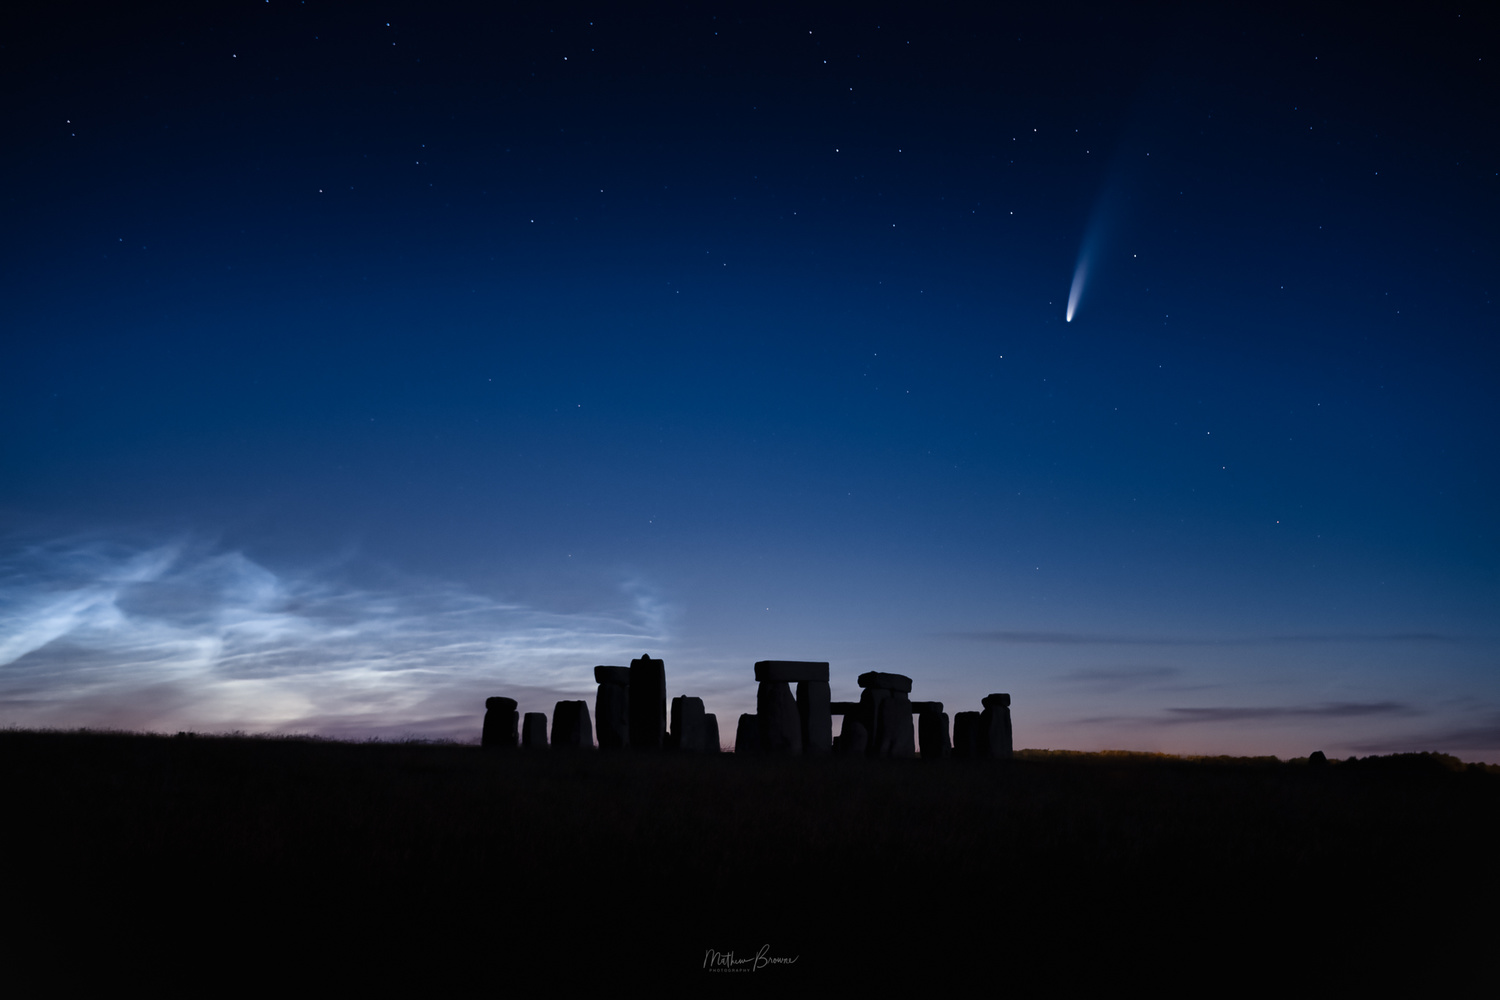 Comet Neowise Over Stonehenge by Mathew Browne